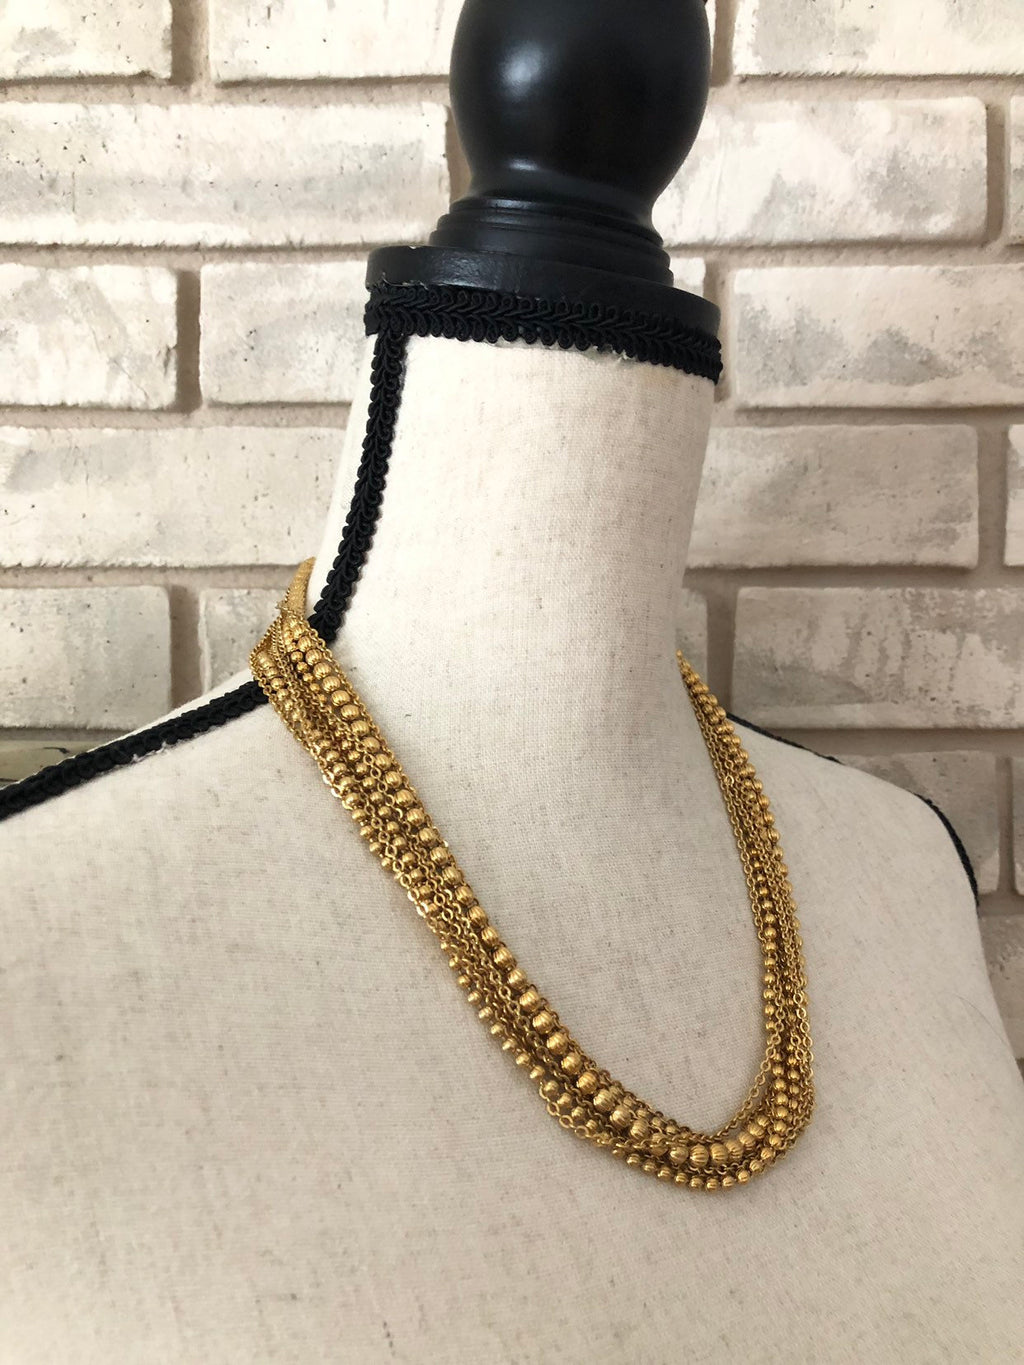 update alt-text with template Vintage Gold Monet Ball Bead Chains Layering Necklace-Necklaces & Pendants-Monet-[trending designer jewelry]-[monet jewelry]-[Sustainable Fashion]